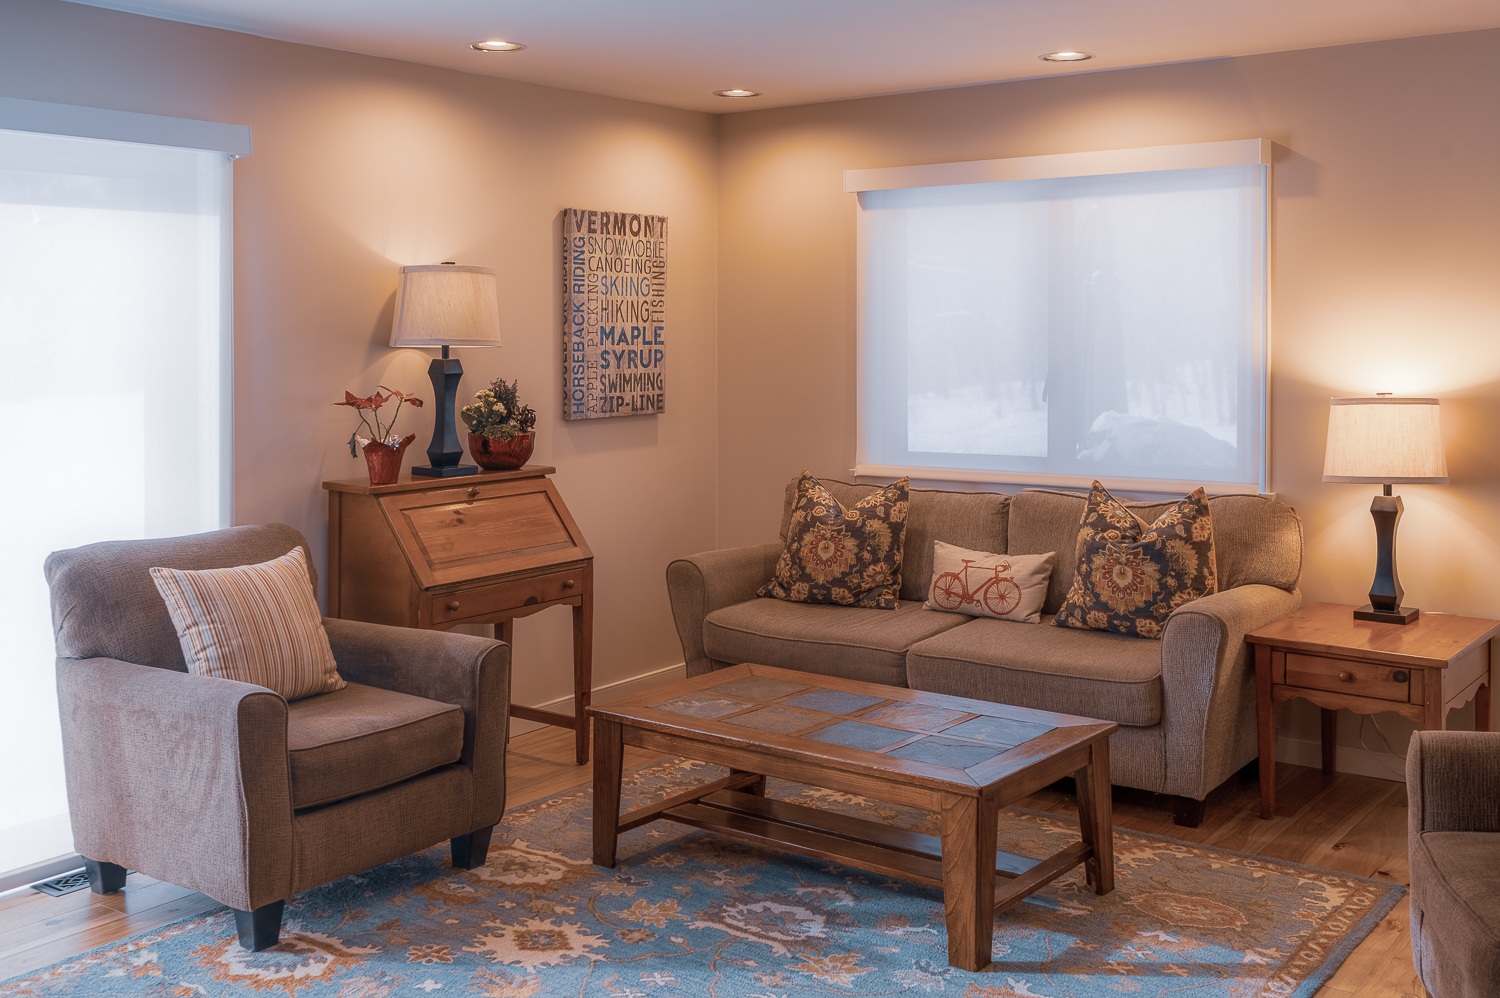 family room couch and chairs.jpg